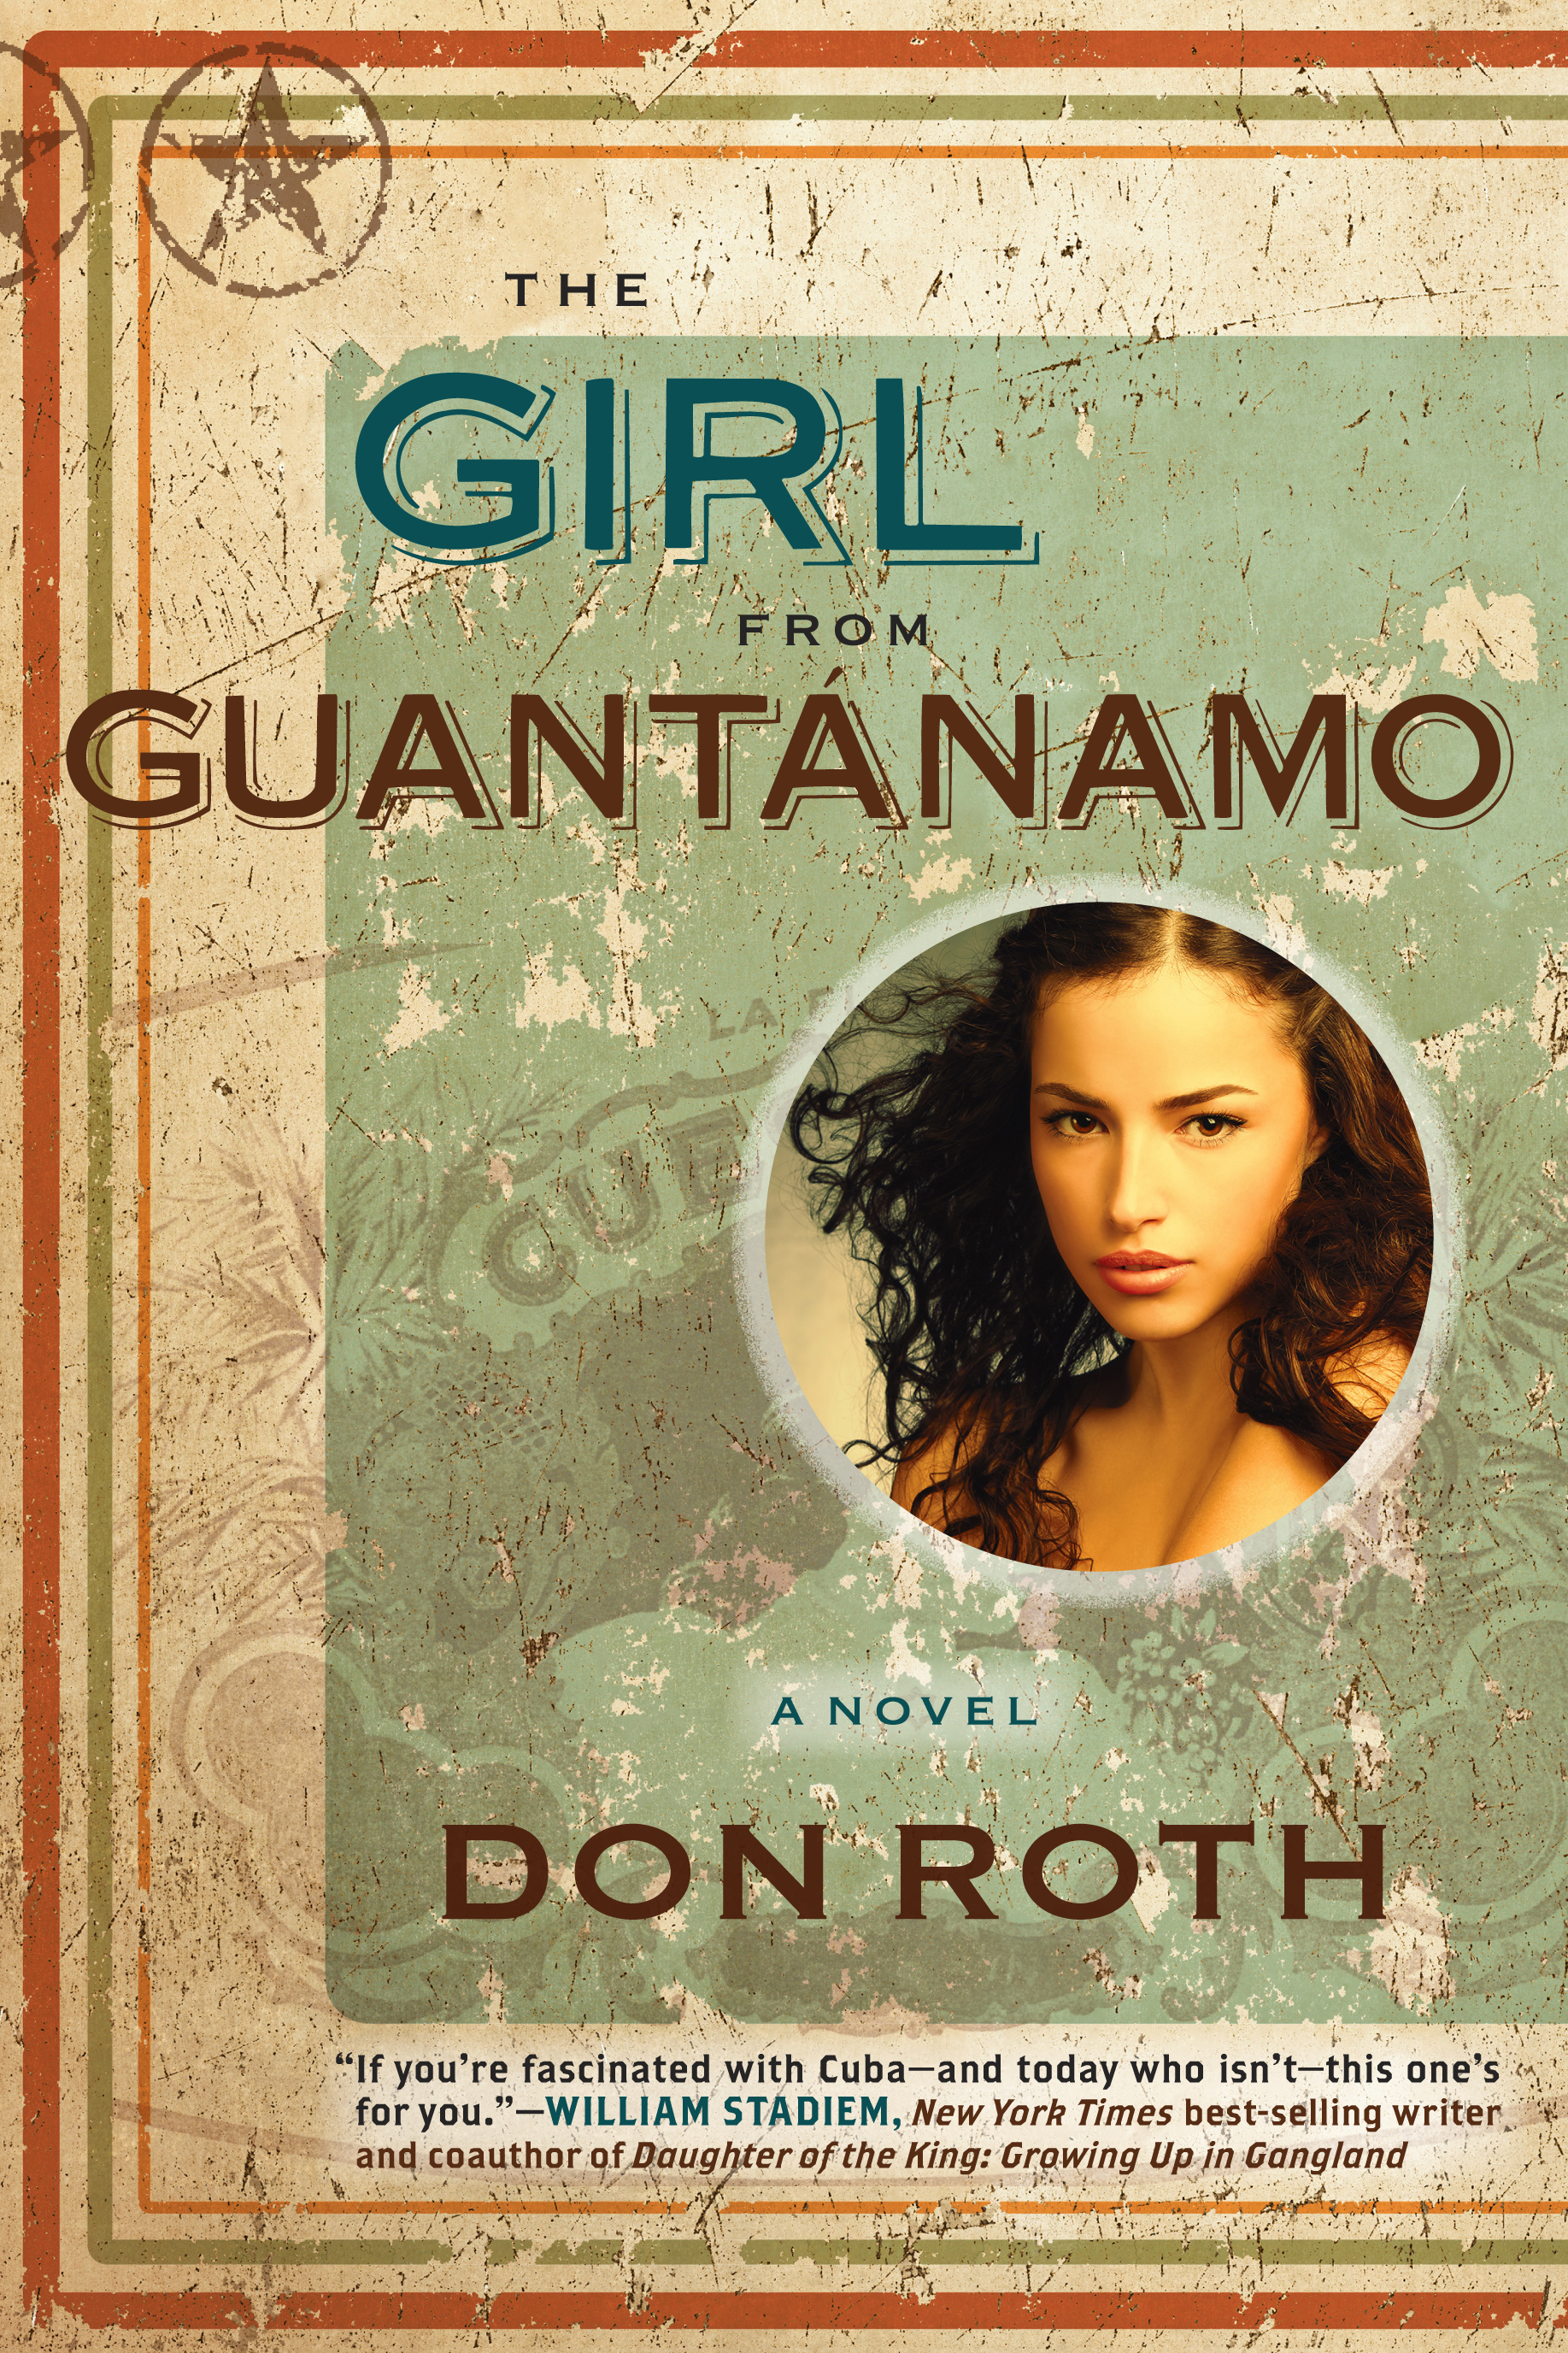 The Girl from Guantanamo